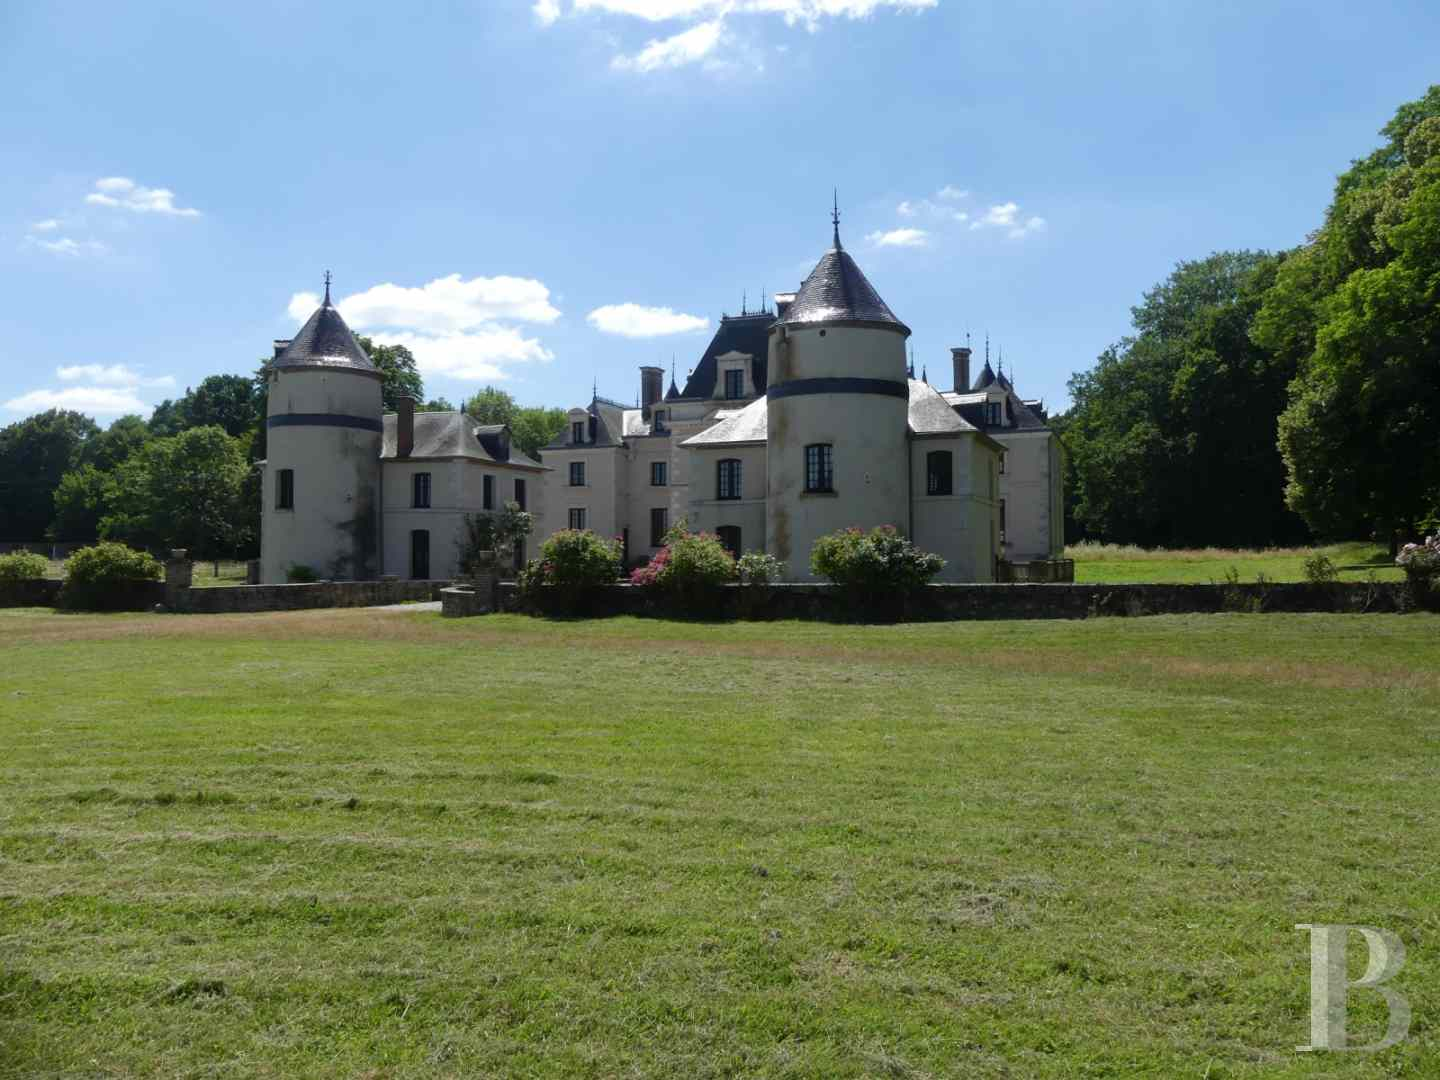 chateaux a vendre bourgogne chateau domaine - 4 zoom